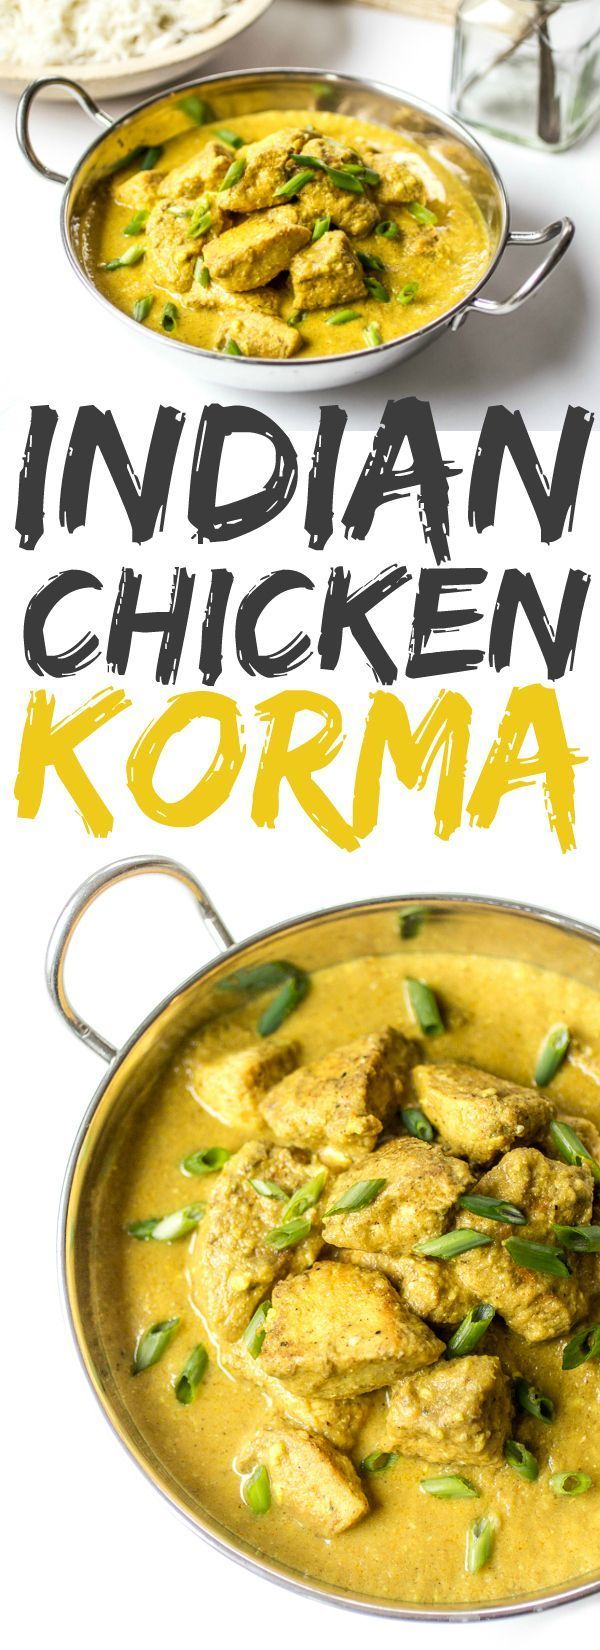 spiced Chicken Korma is the stuff dreams are made of. Loosen up those pants and make this delectable Indian dish at home!